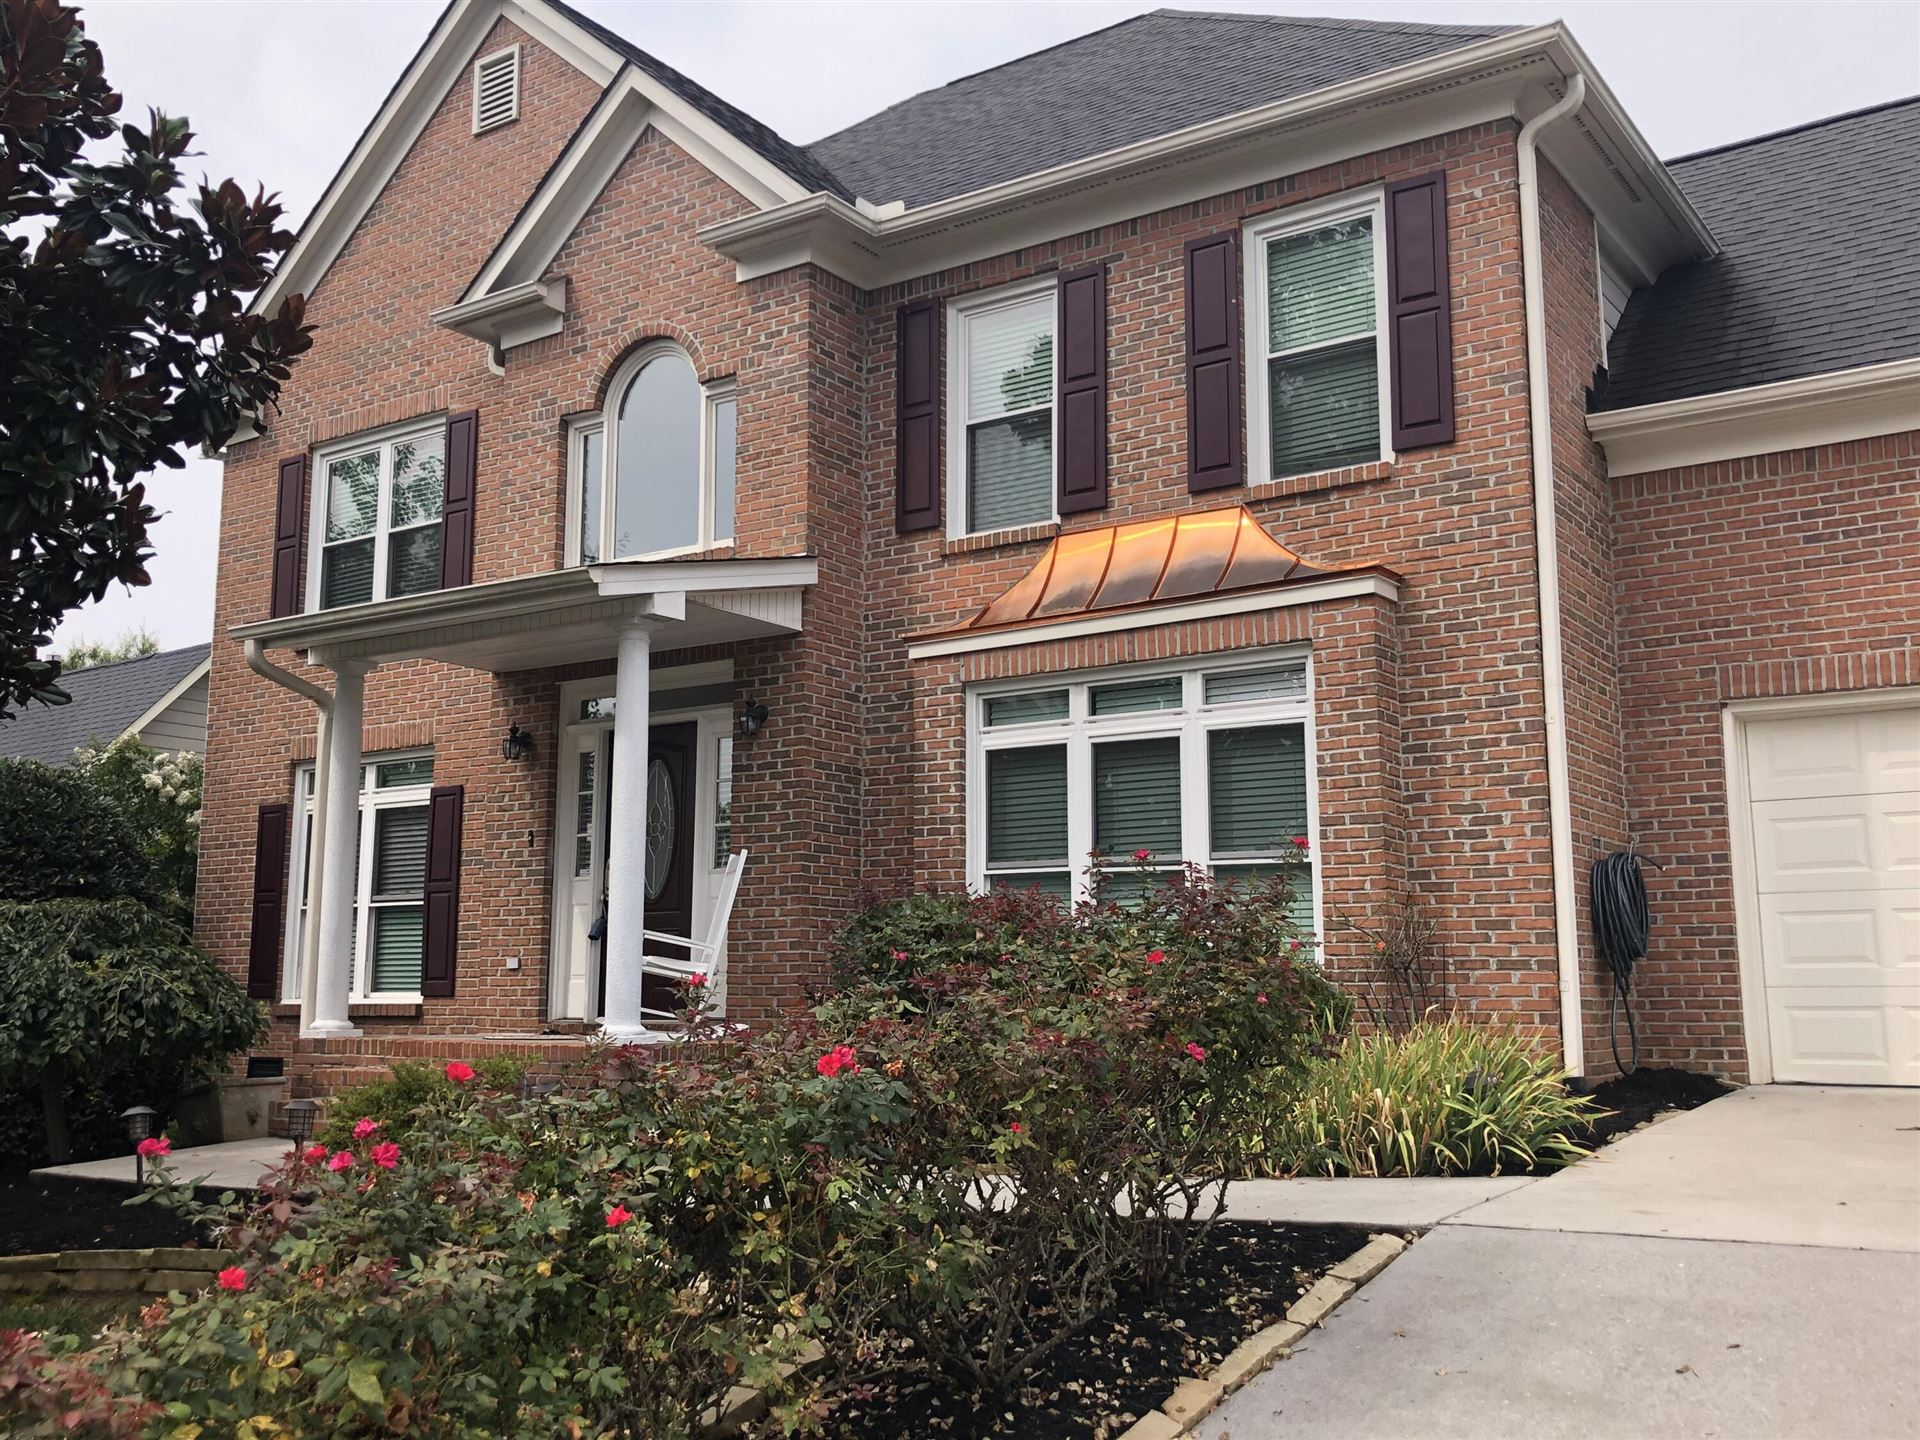 1007 Royal Mew Court, Knoxville, TN 37922 - MLS#: 1162125